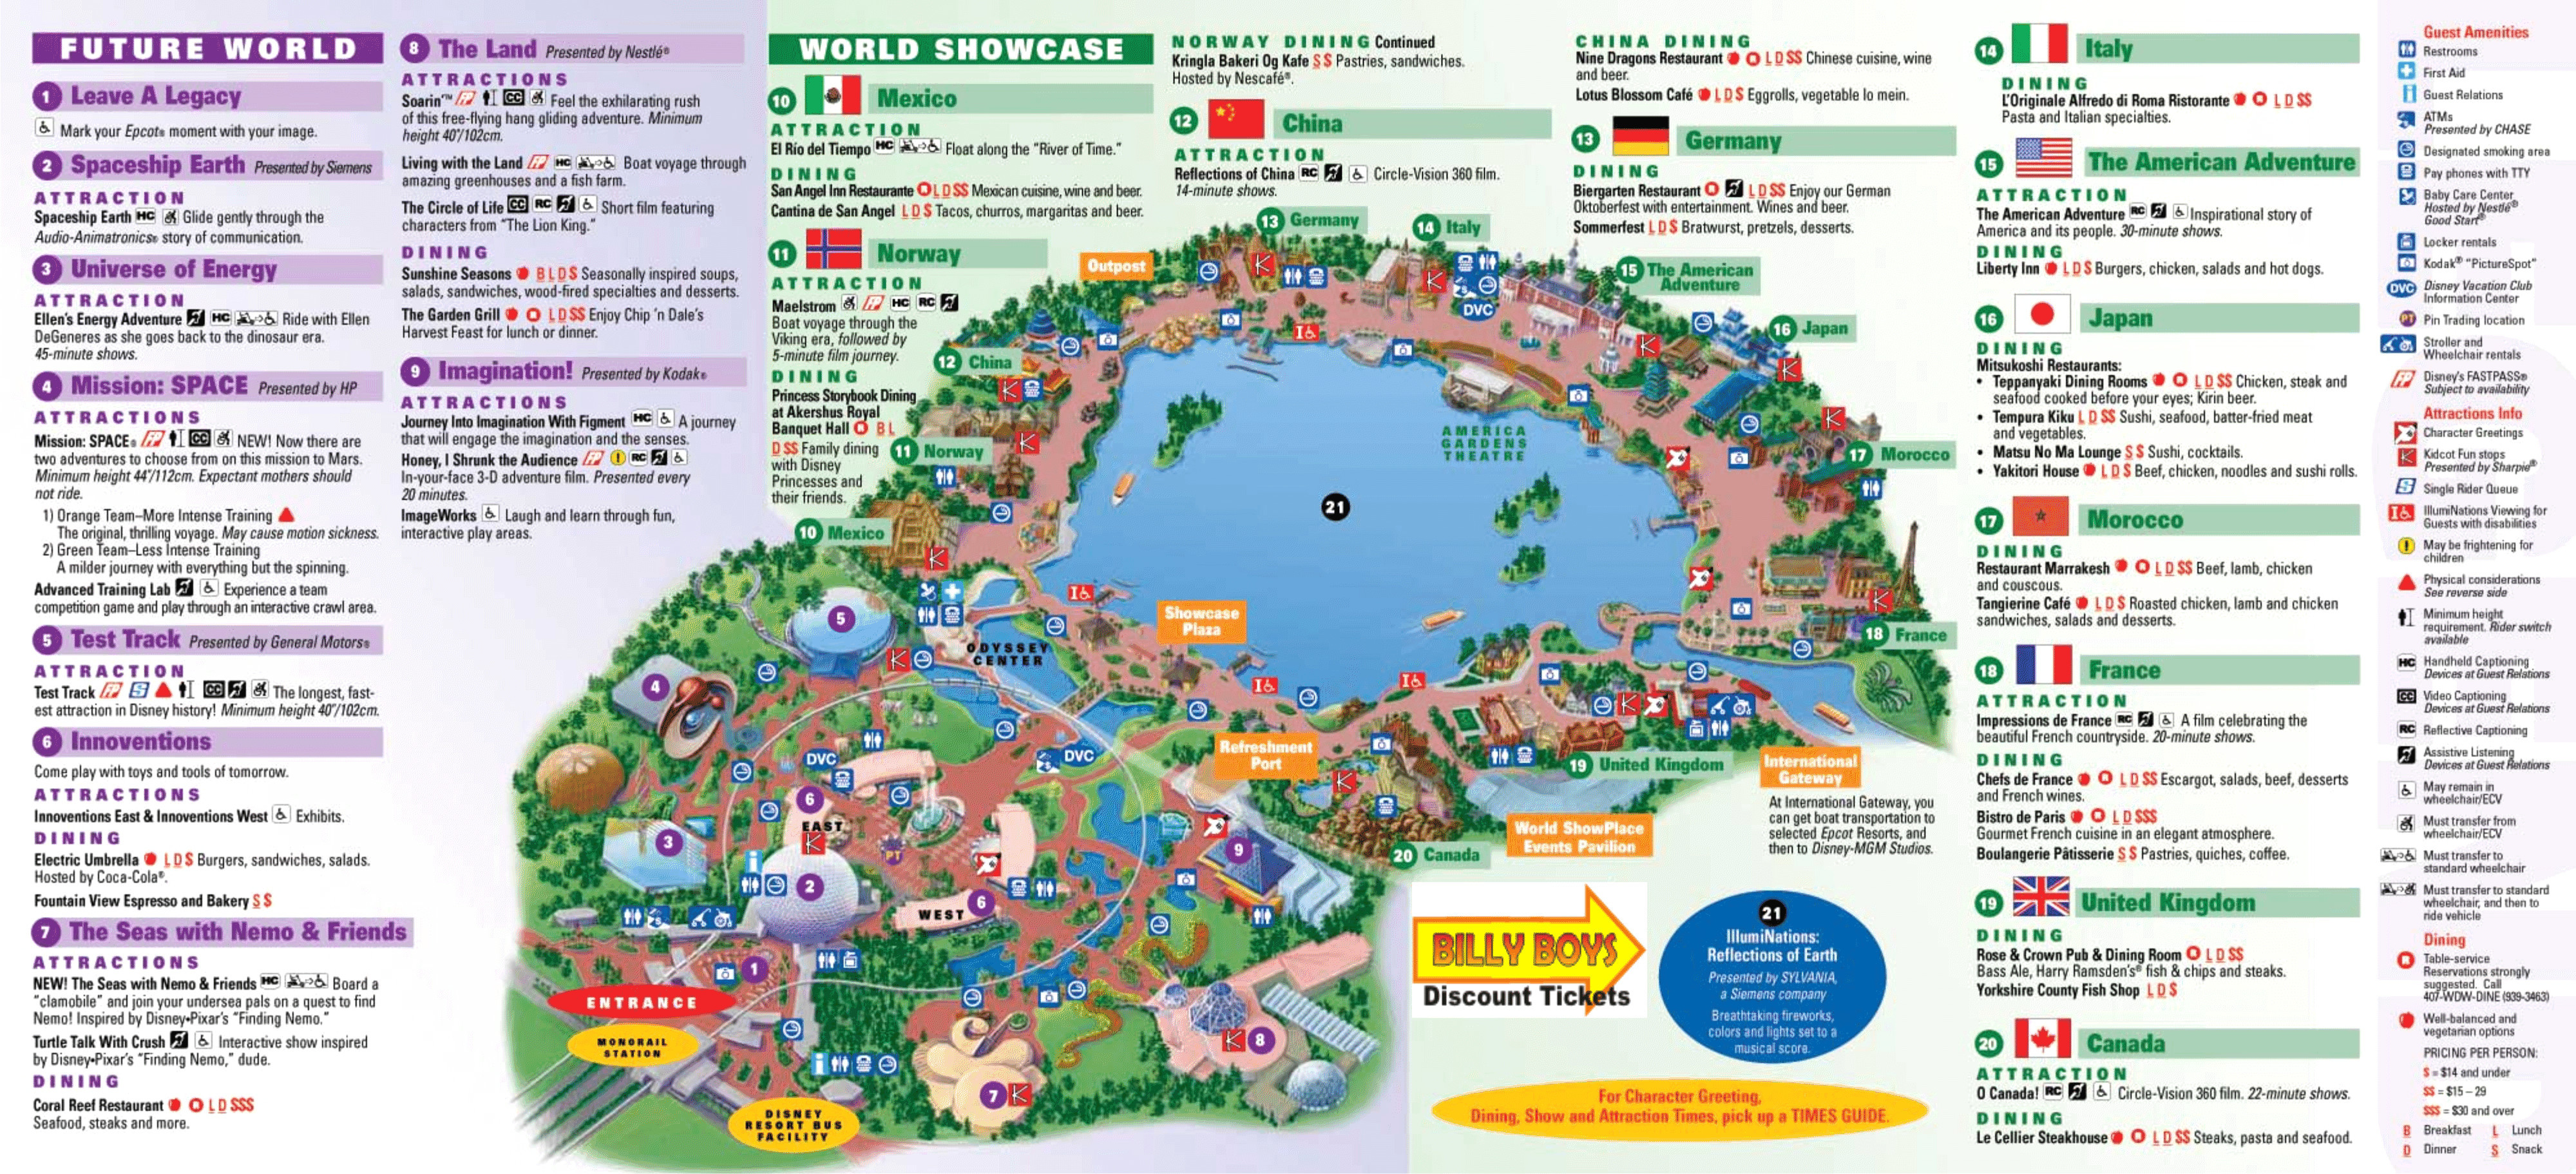 Printable Map Hollywood Studios Awesome orlando Florida area Maps for Disney World Hollywood Studios Map